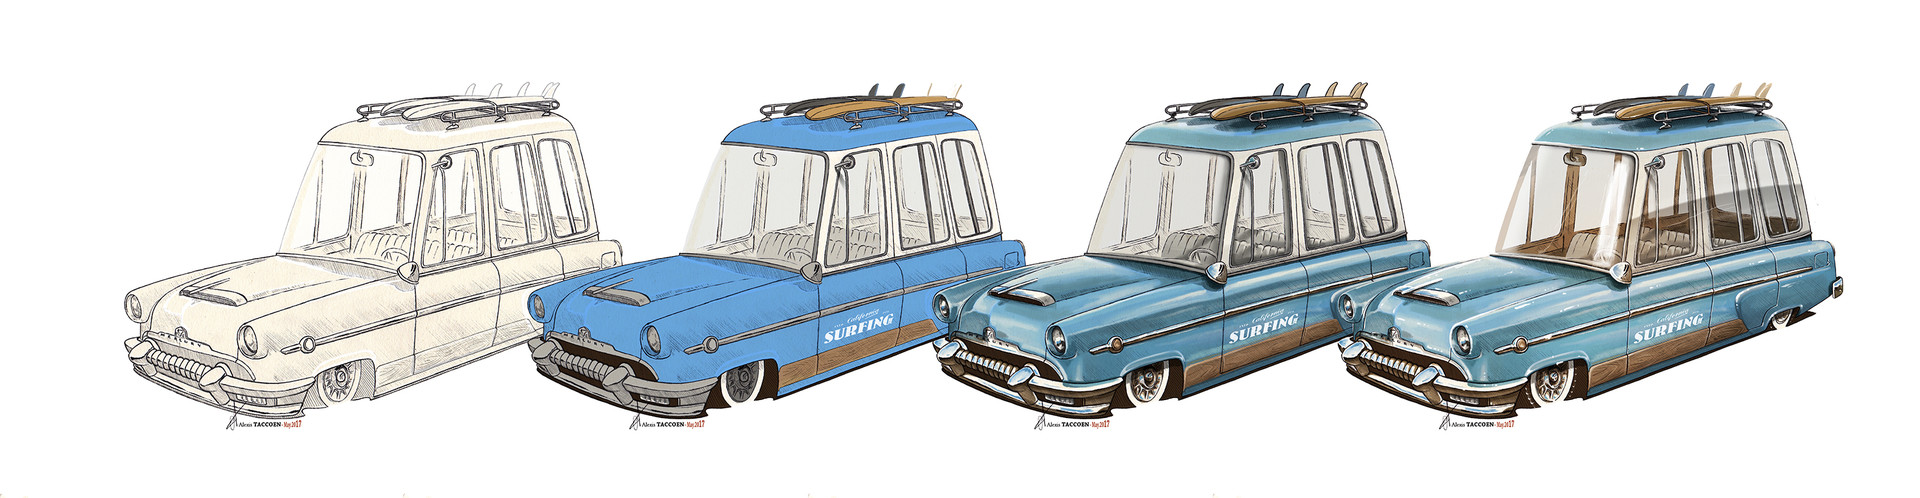 Alexis taccoen surf wagon mercury 54 wip low